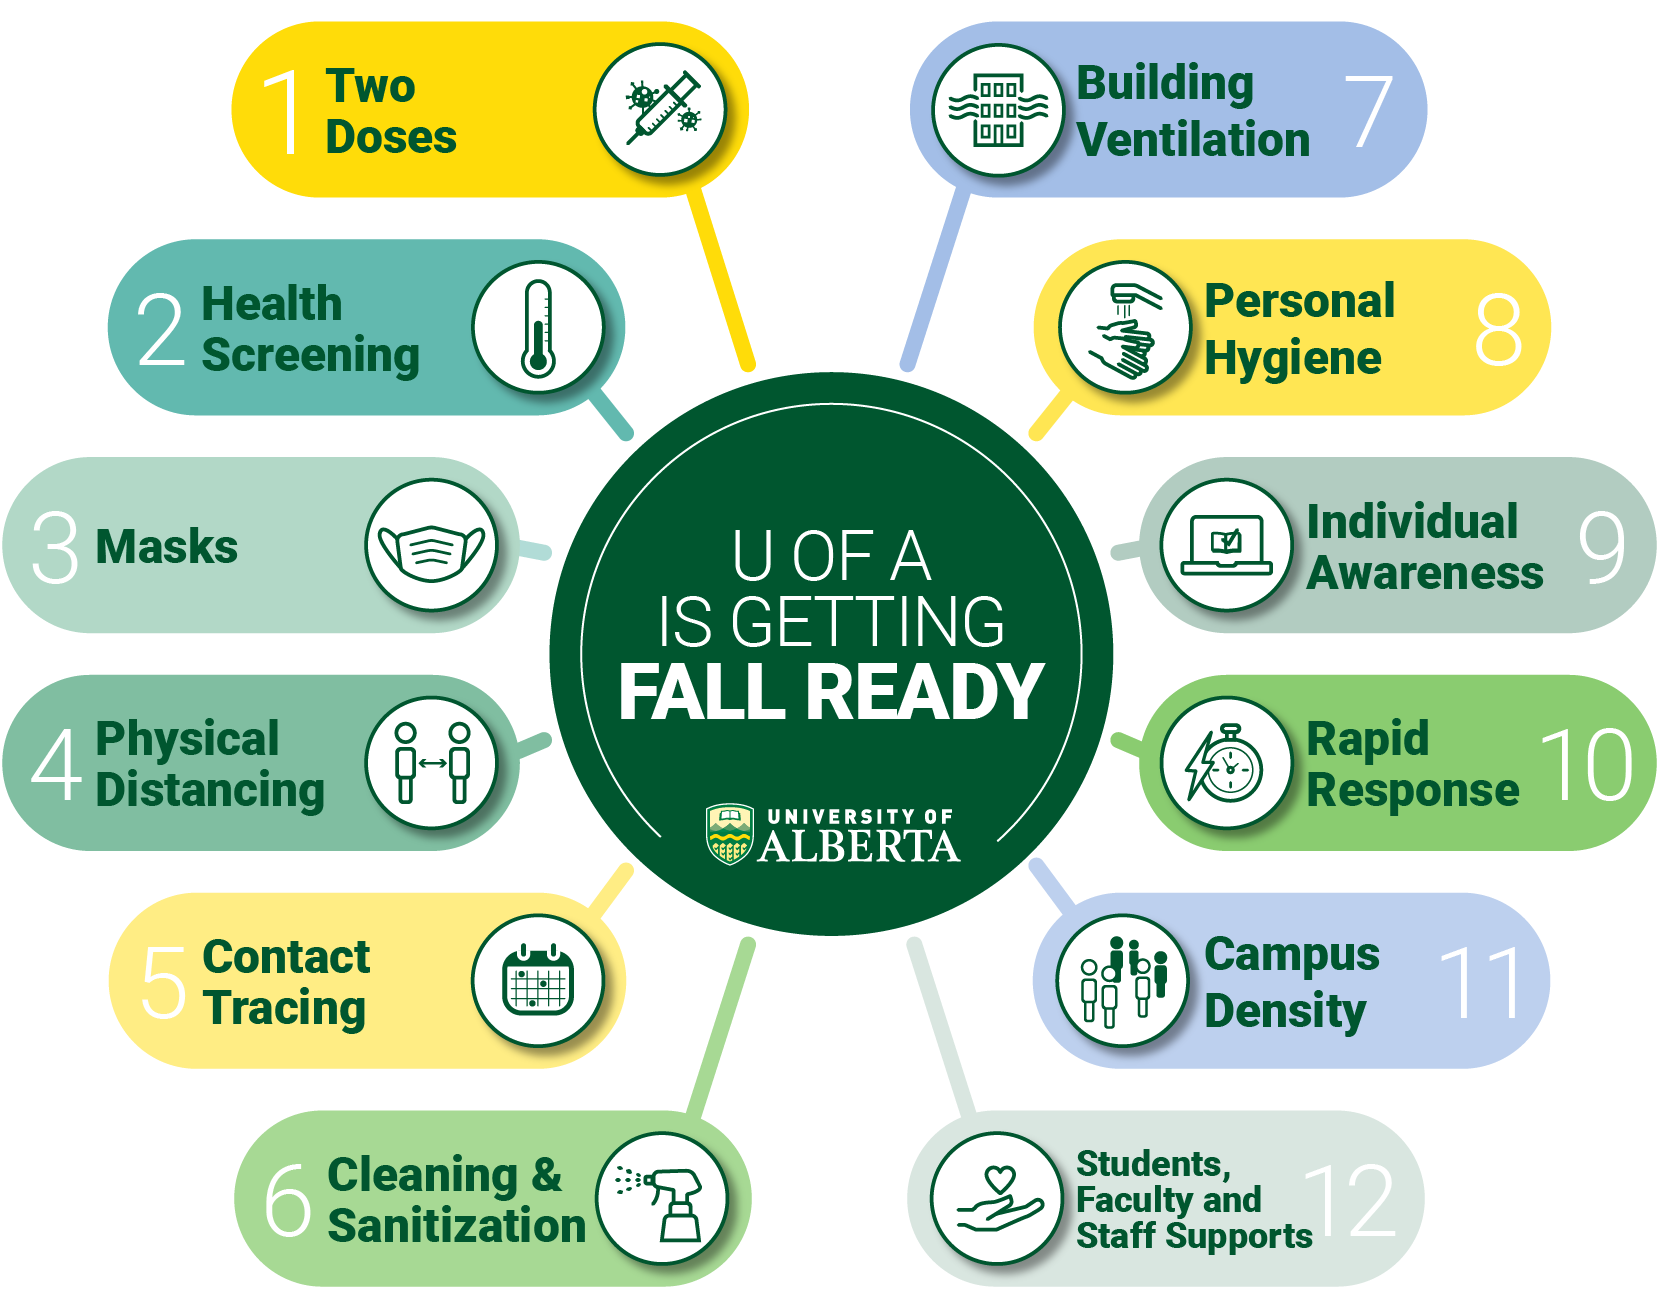 The U of A is Getting Fall Ready